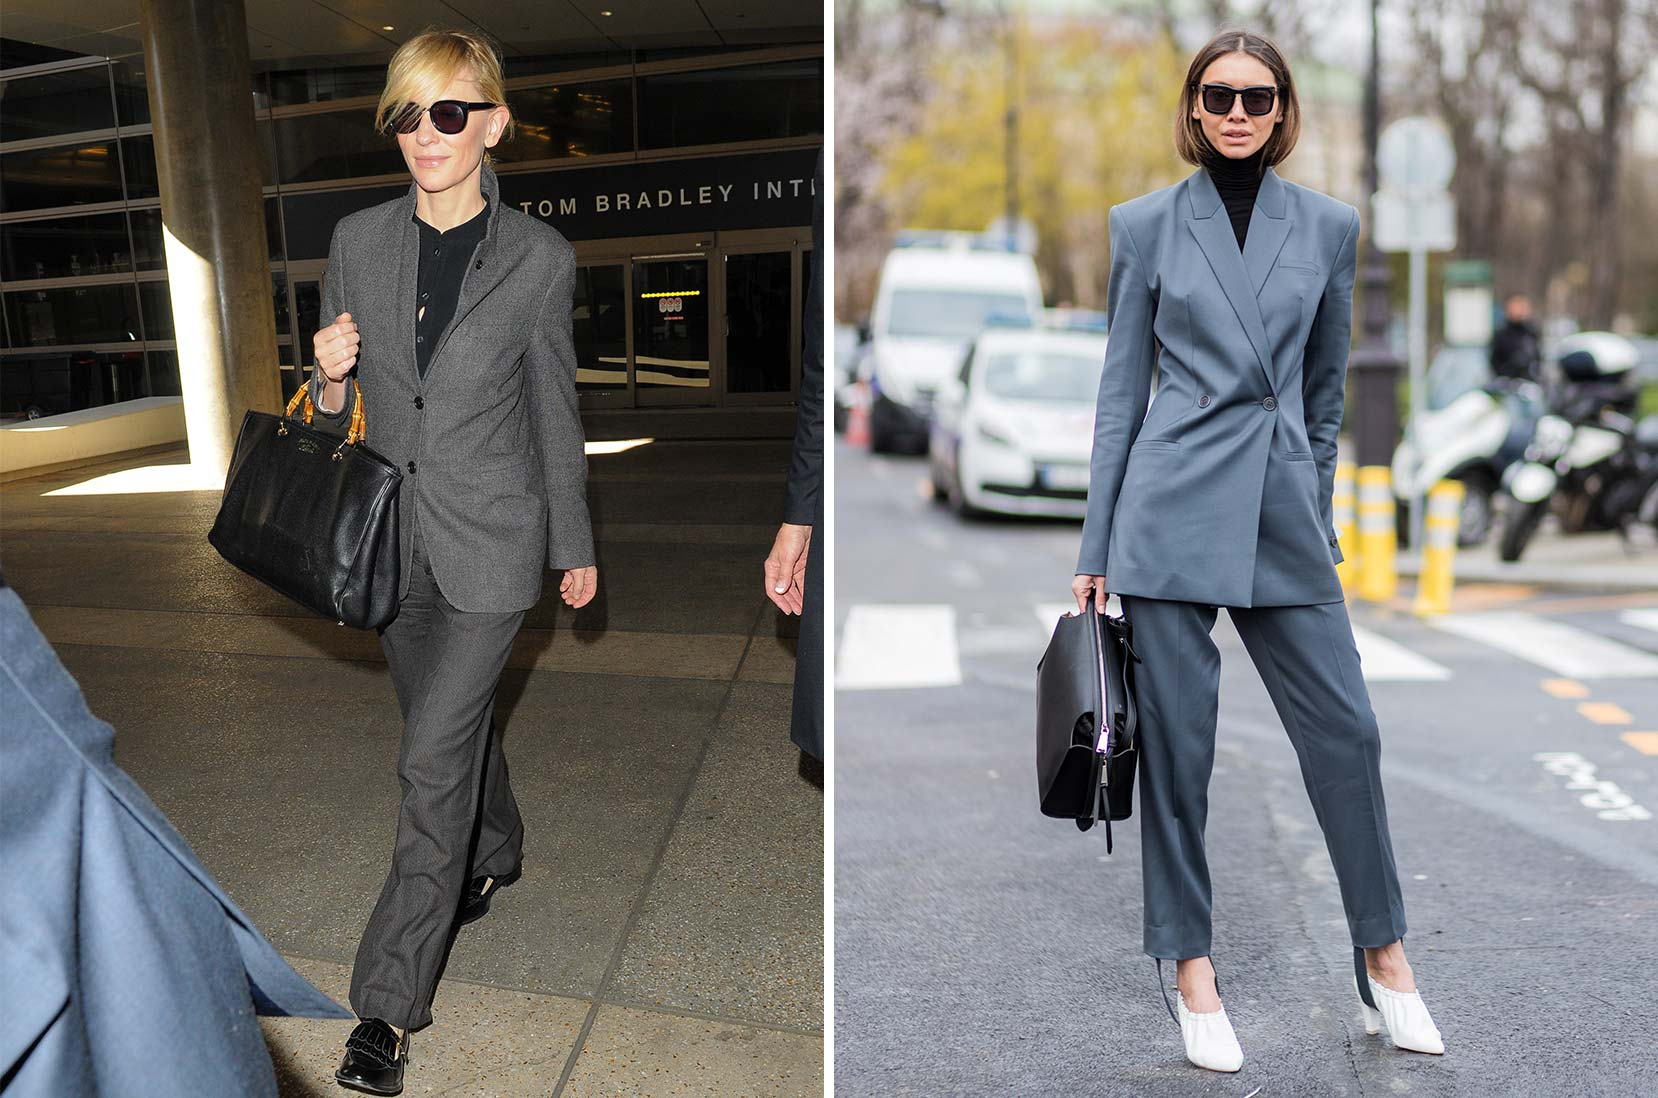 3) Who's the boss? Cate Blanchett i klassiker som kombineras med tofsprydda loafers © GVK/Bauer-Griffin/GC Images 4) Stiluppdatering: I Paris väljer man en tvådelad kostym med skipants och bär den med vita pumps © Christian Vierig/Getty Images